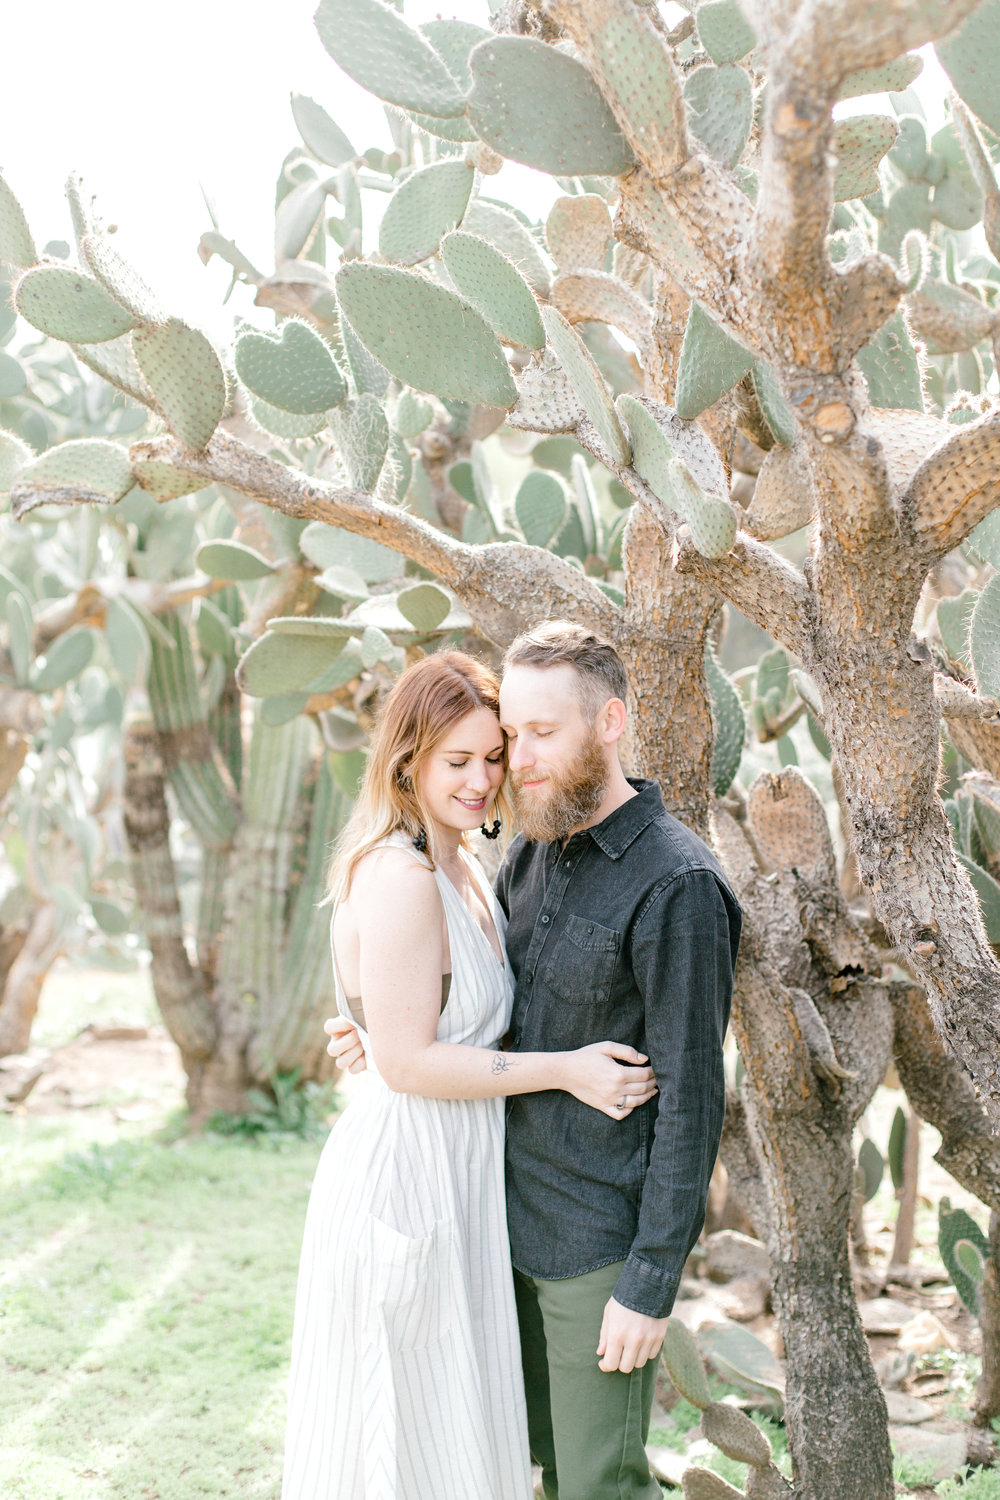 jessica sgubin photography atlanta portrait photographer cacti garden engagement family couple wedding joshua tree wedding elopement-1.jpg